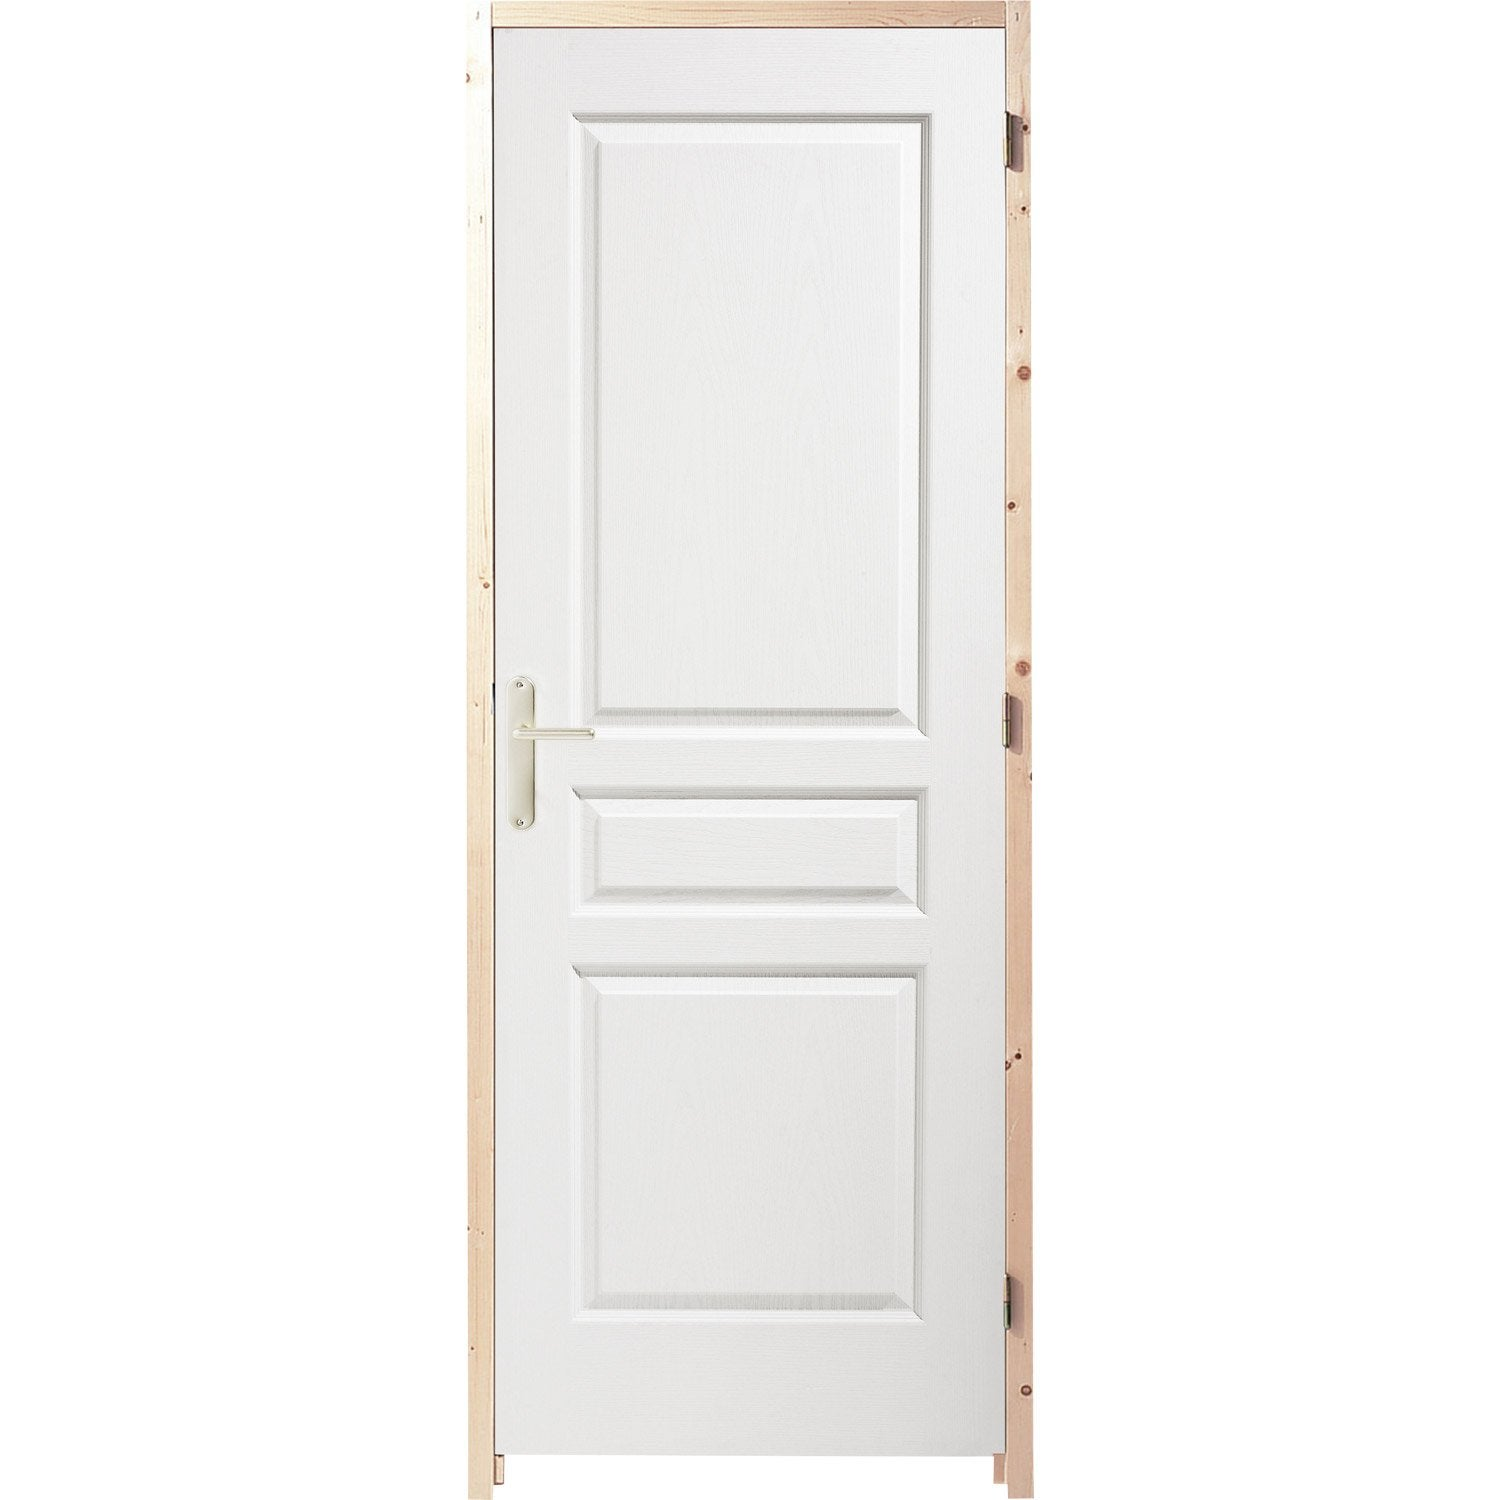 Bloc porte postform postform x cm poussant for Portes righini